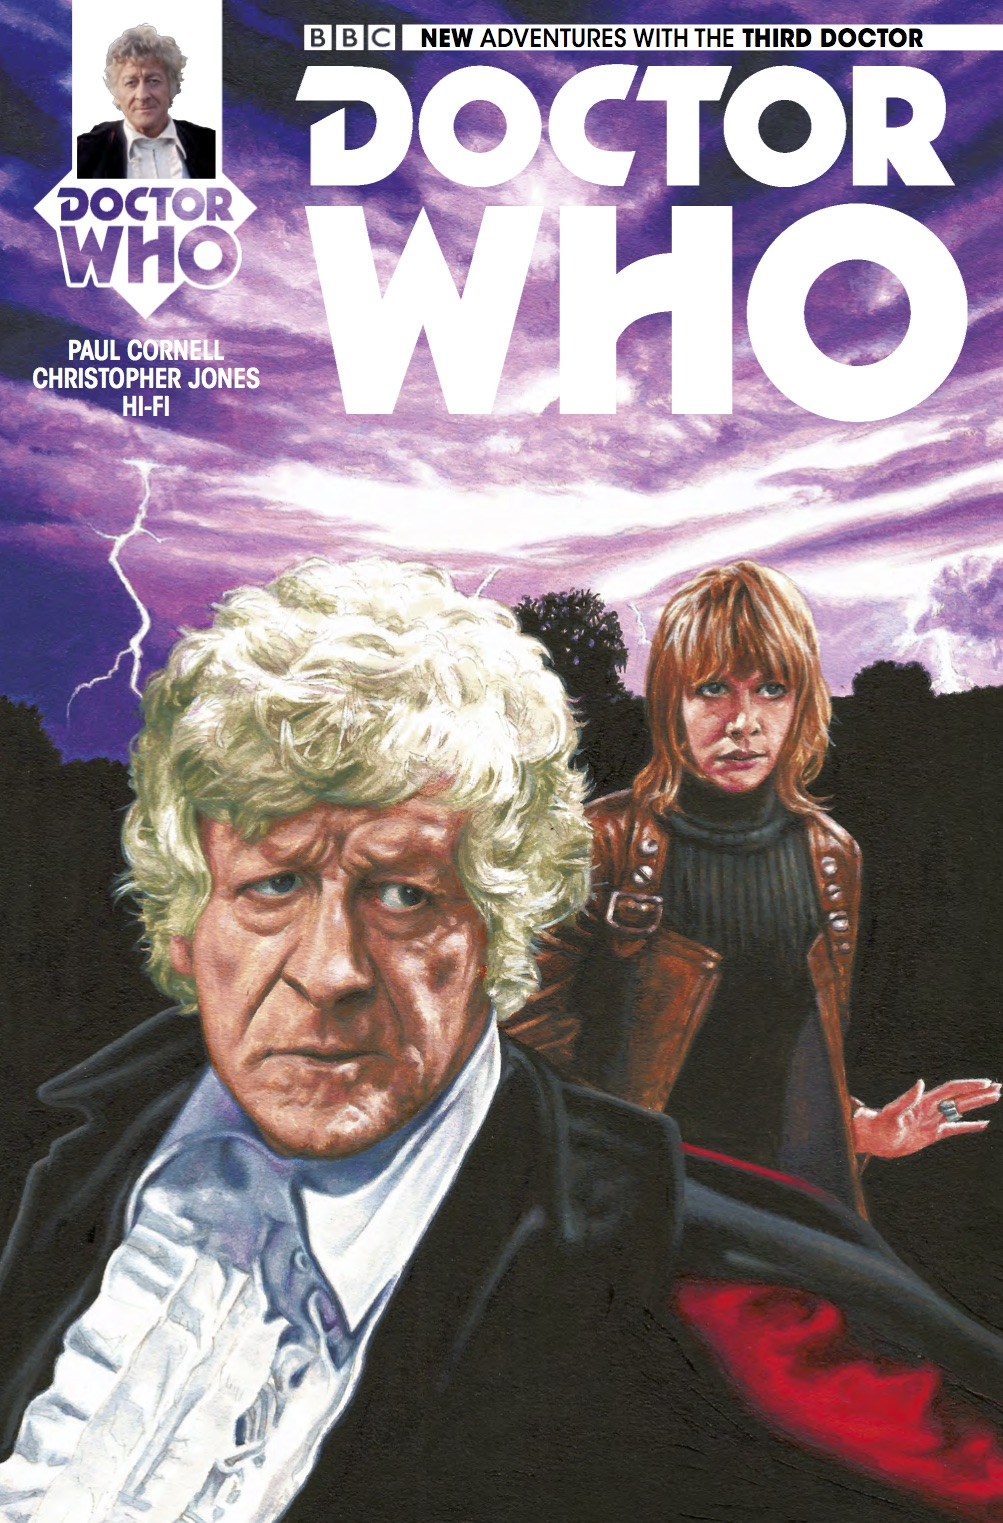 DOCTOR WHO THIRD DOCTOR #4 Cover_A (Credit: Titan)